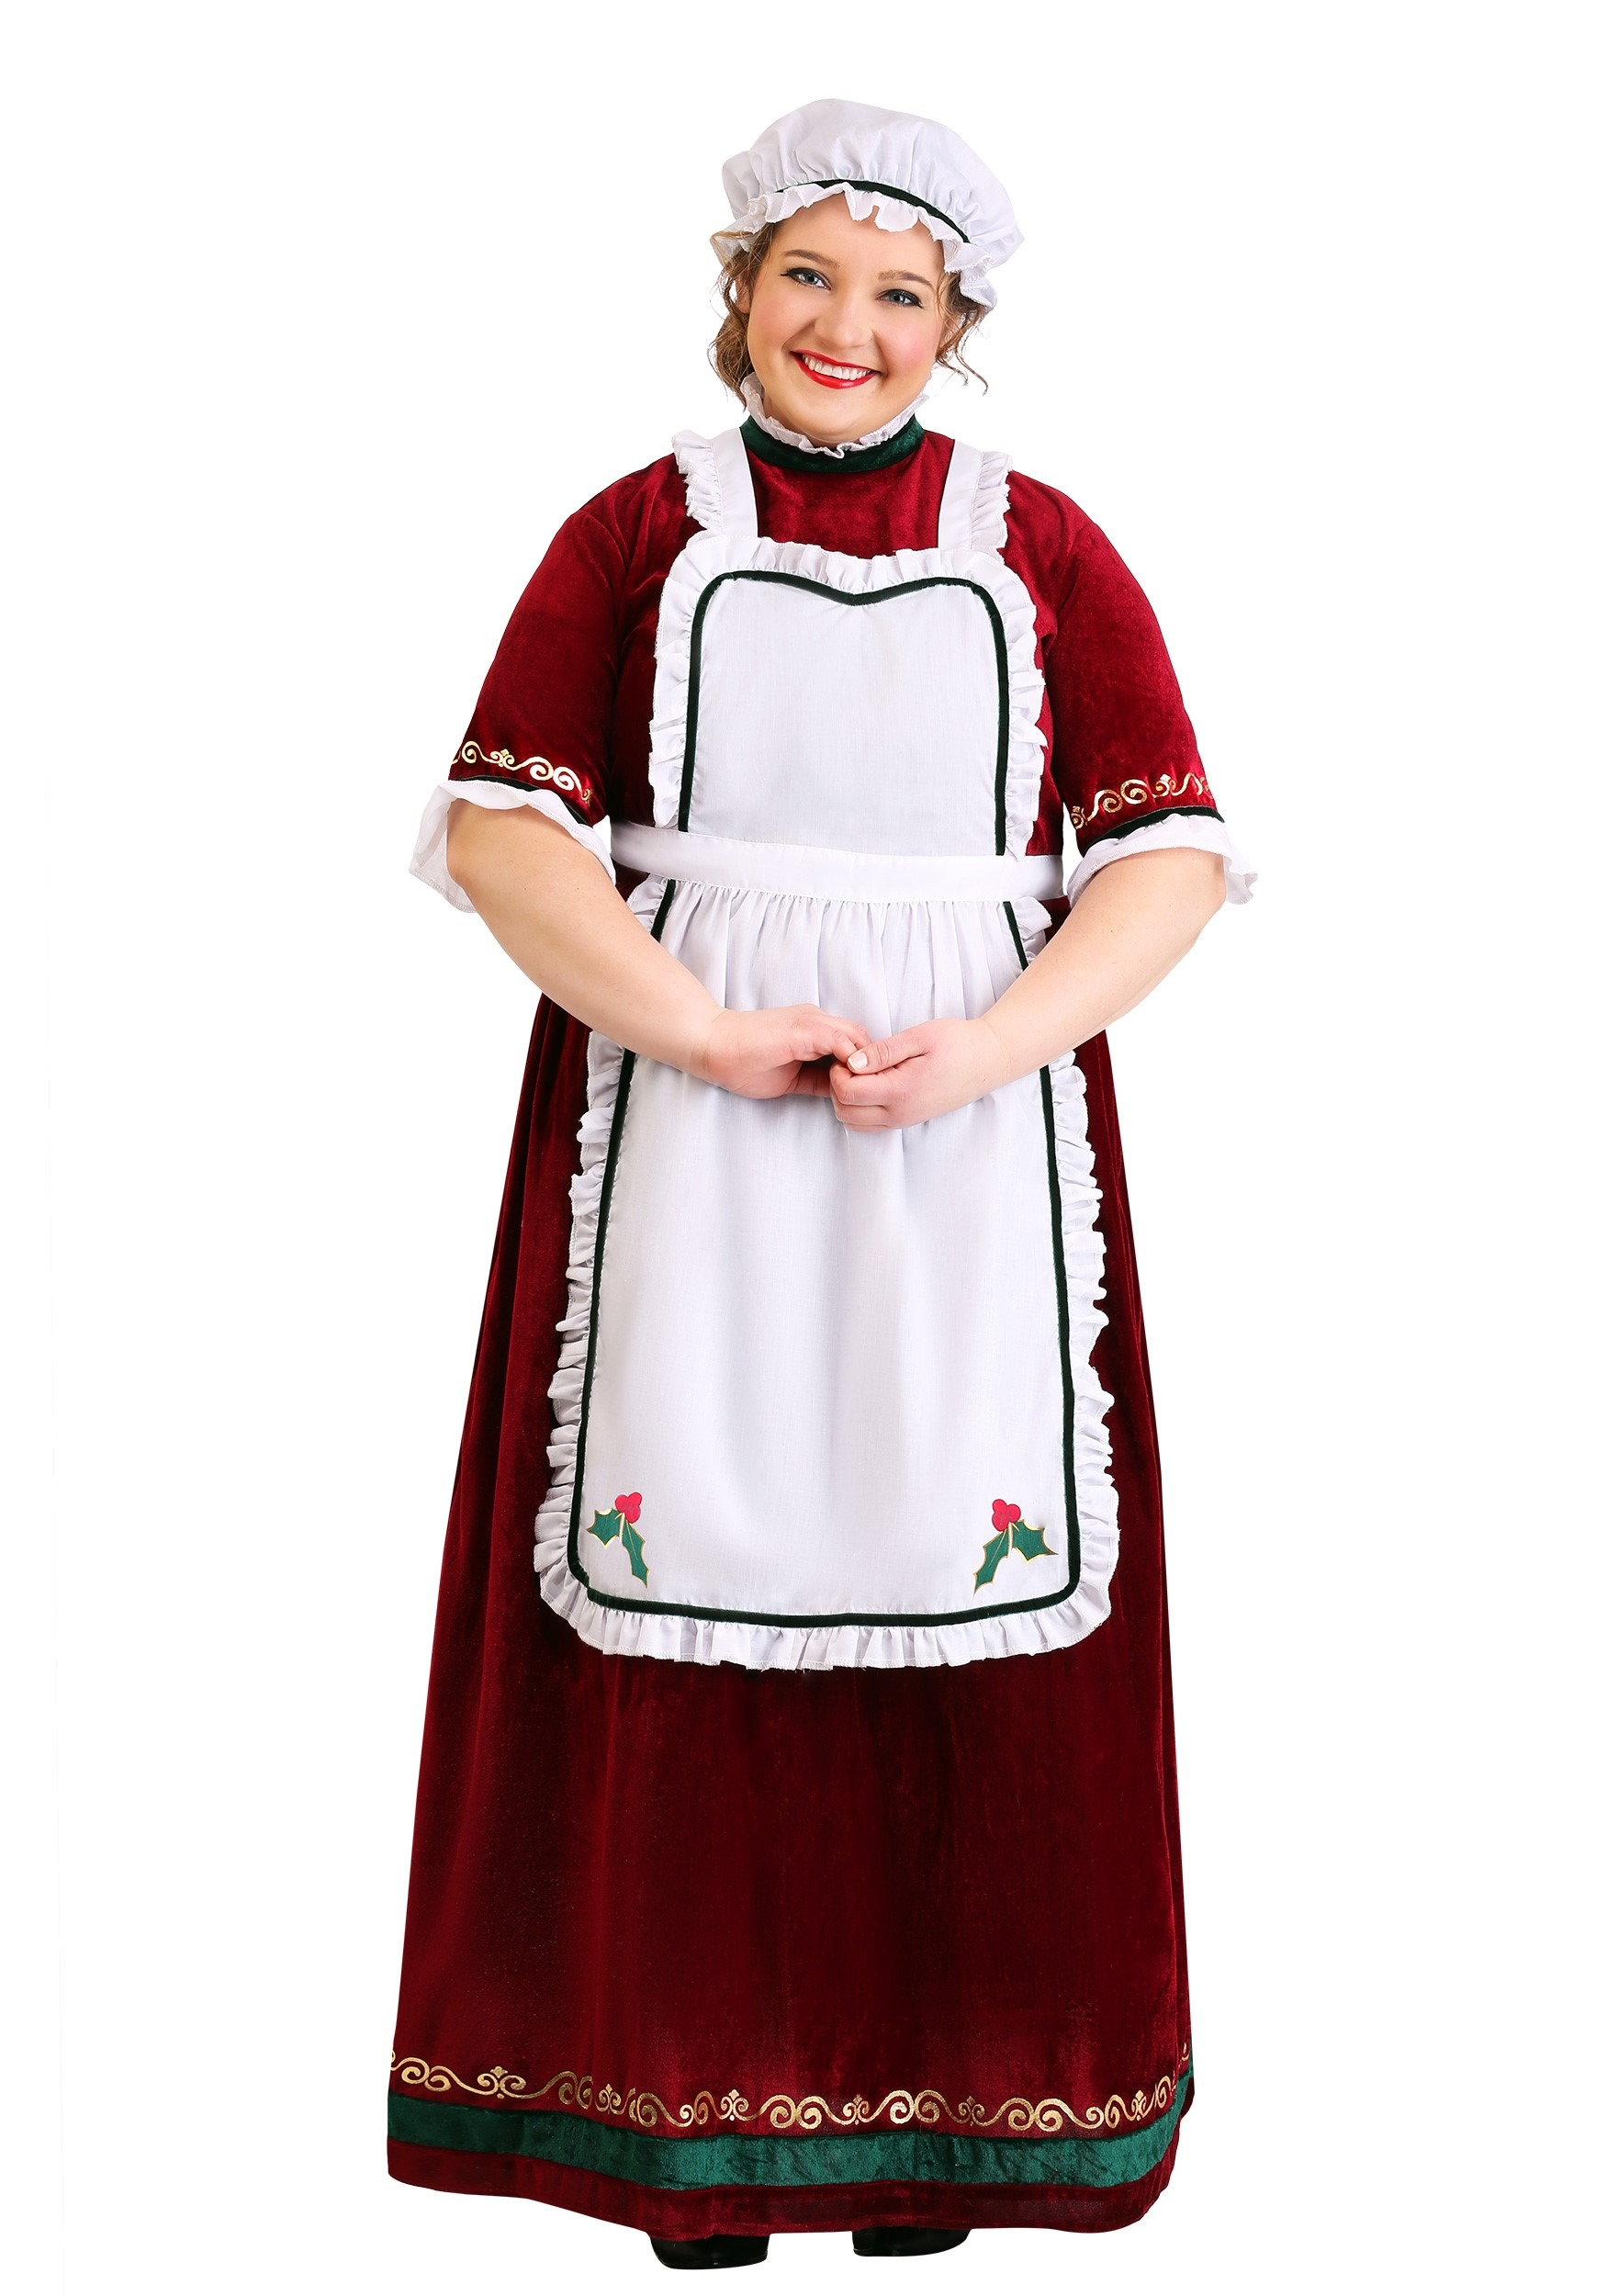 Mrs. Claus Holiday Costume Plus Size